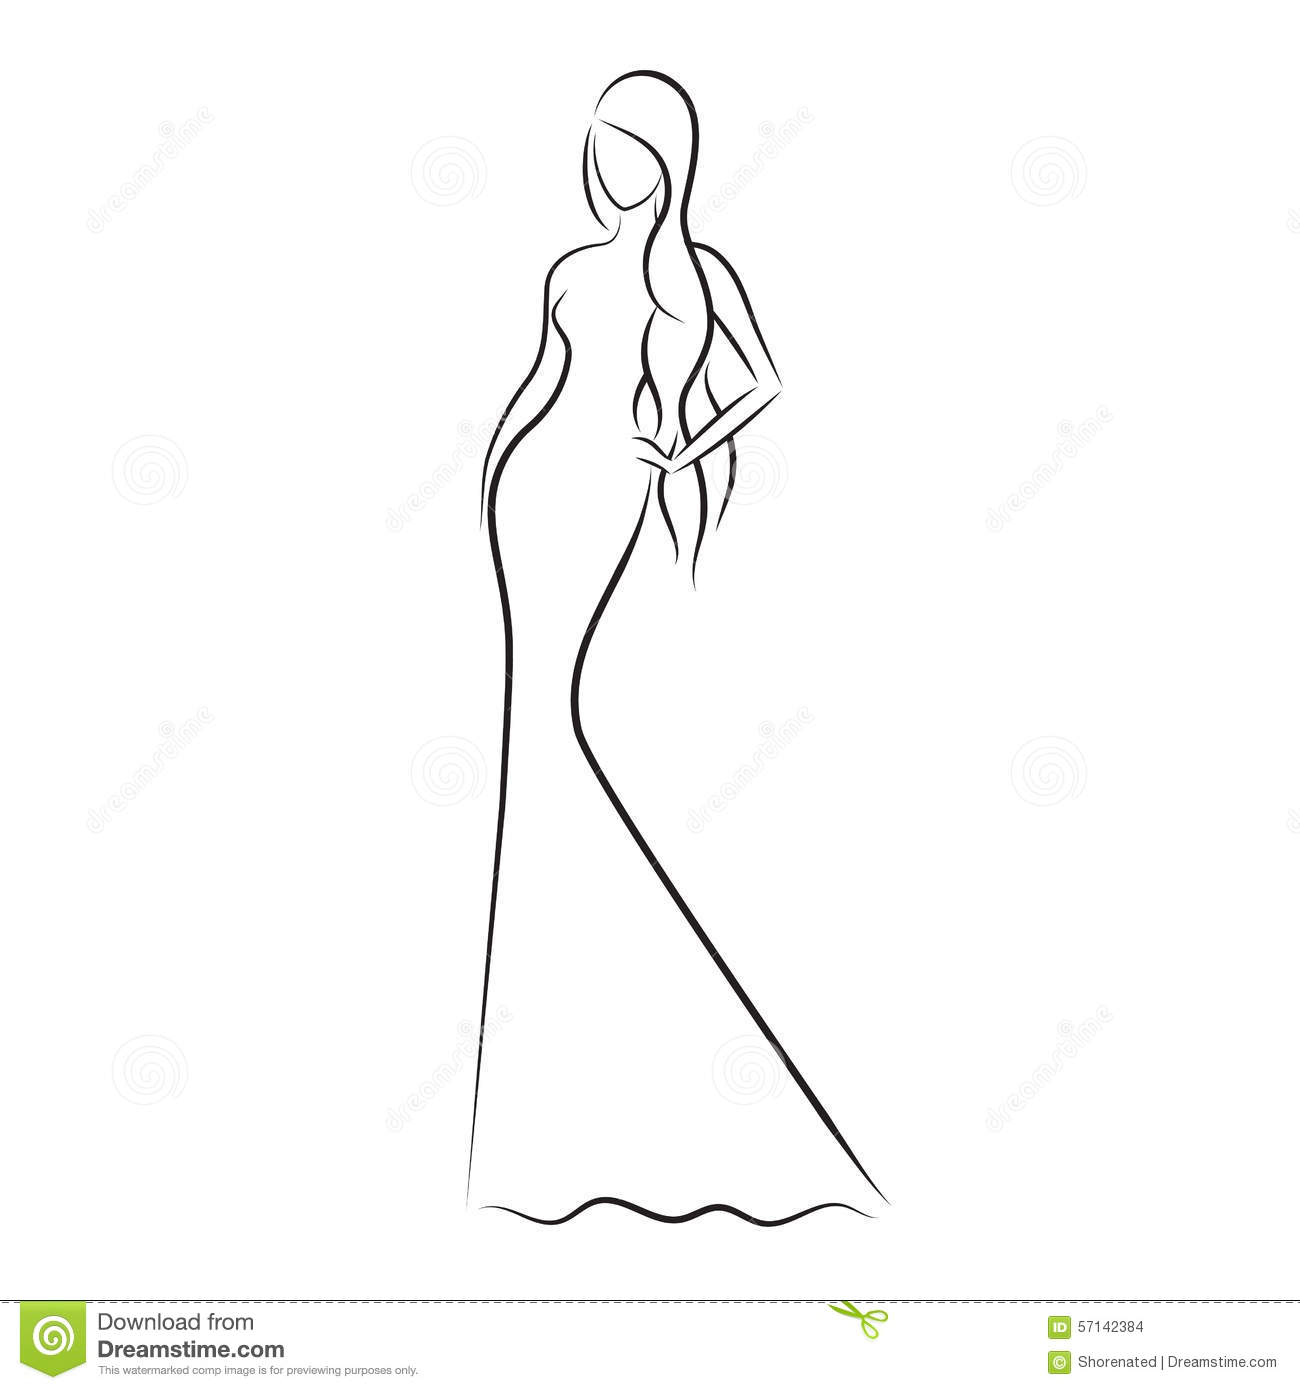 Fashion model sketch stock vector. Illustration of ...